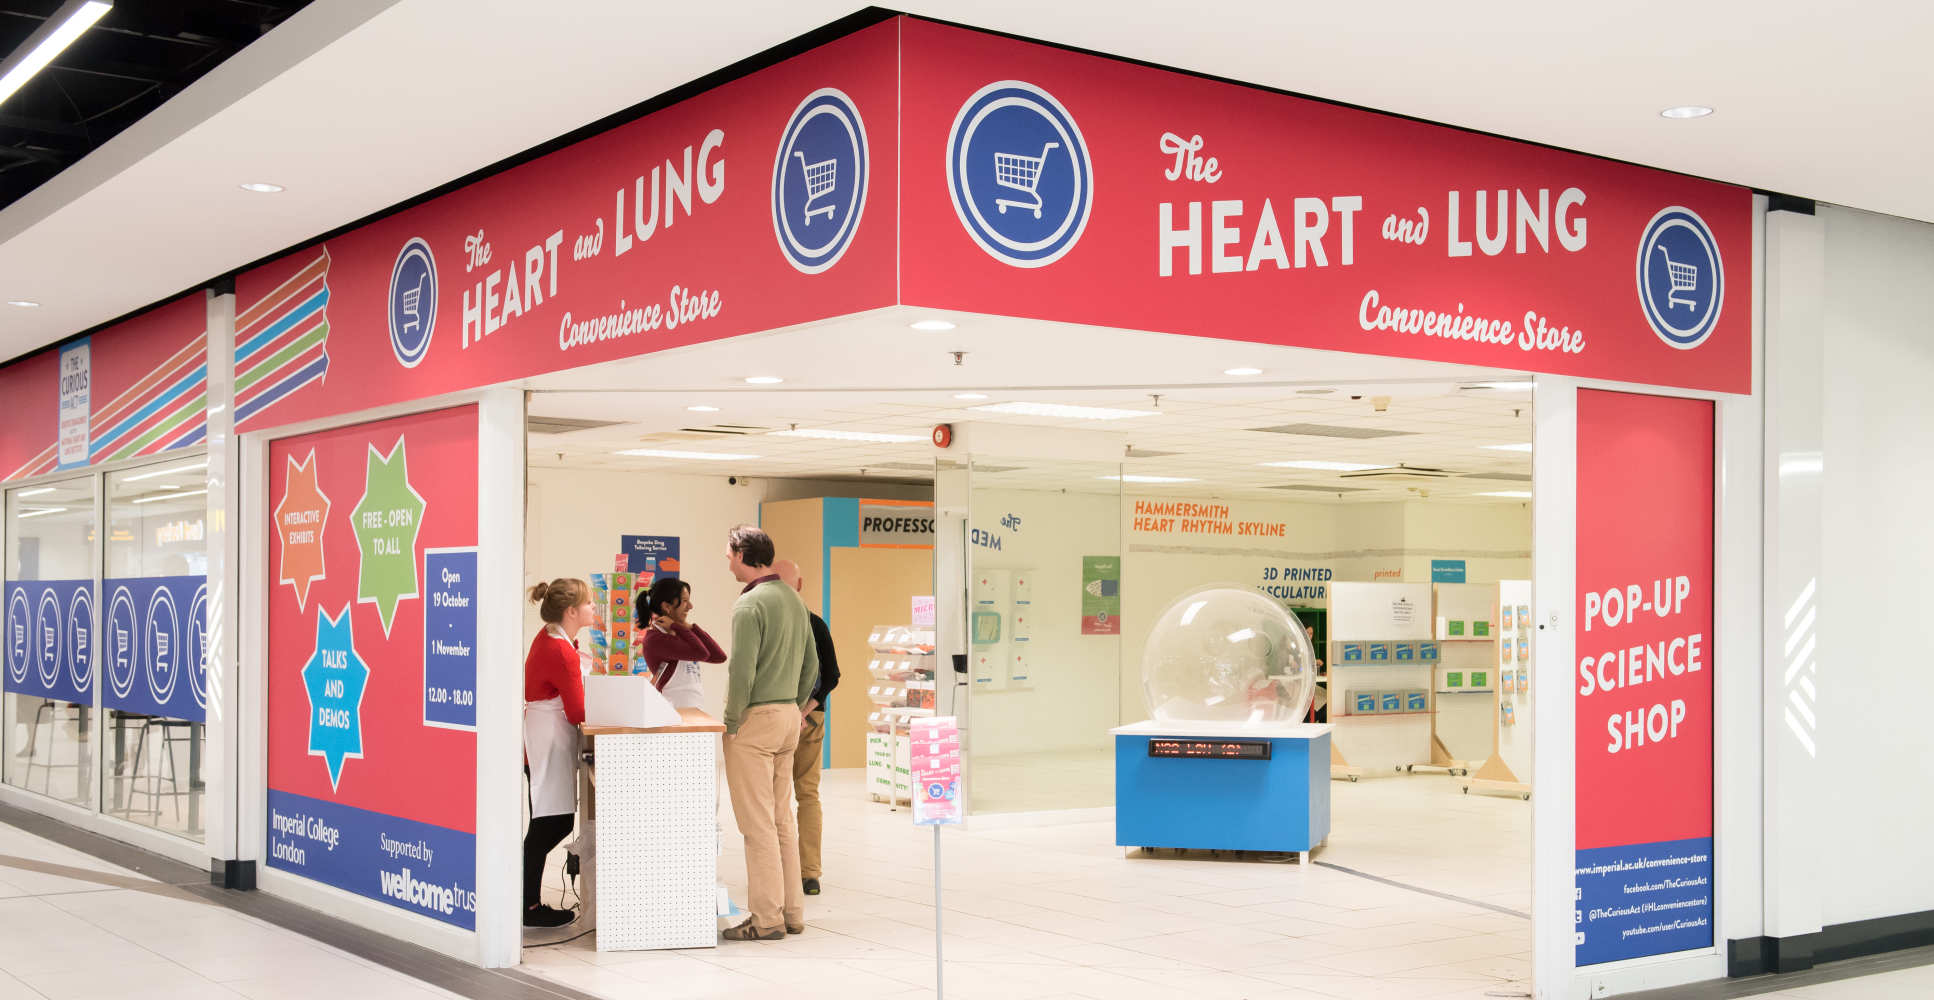 Exterior heart and lung convenience store